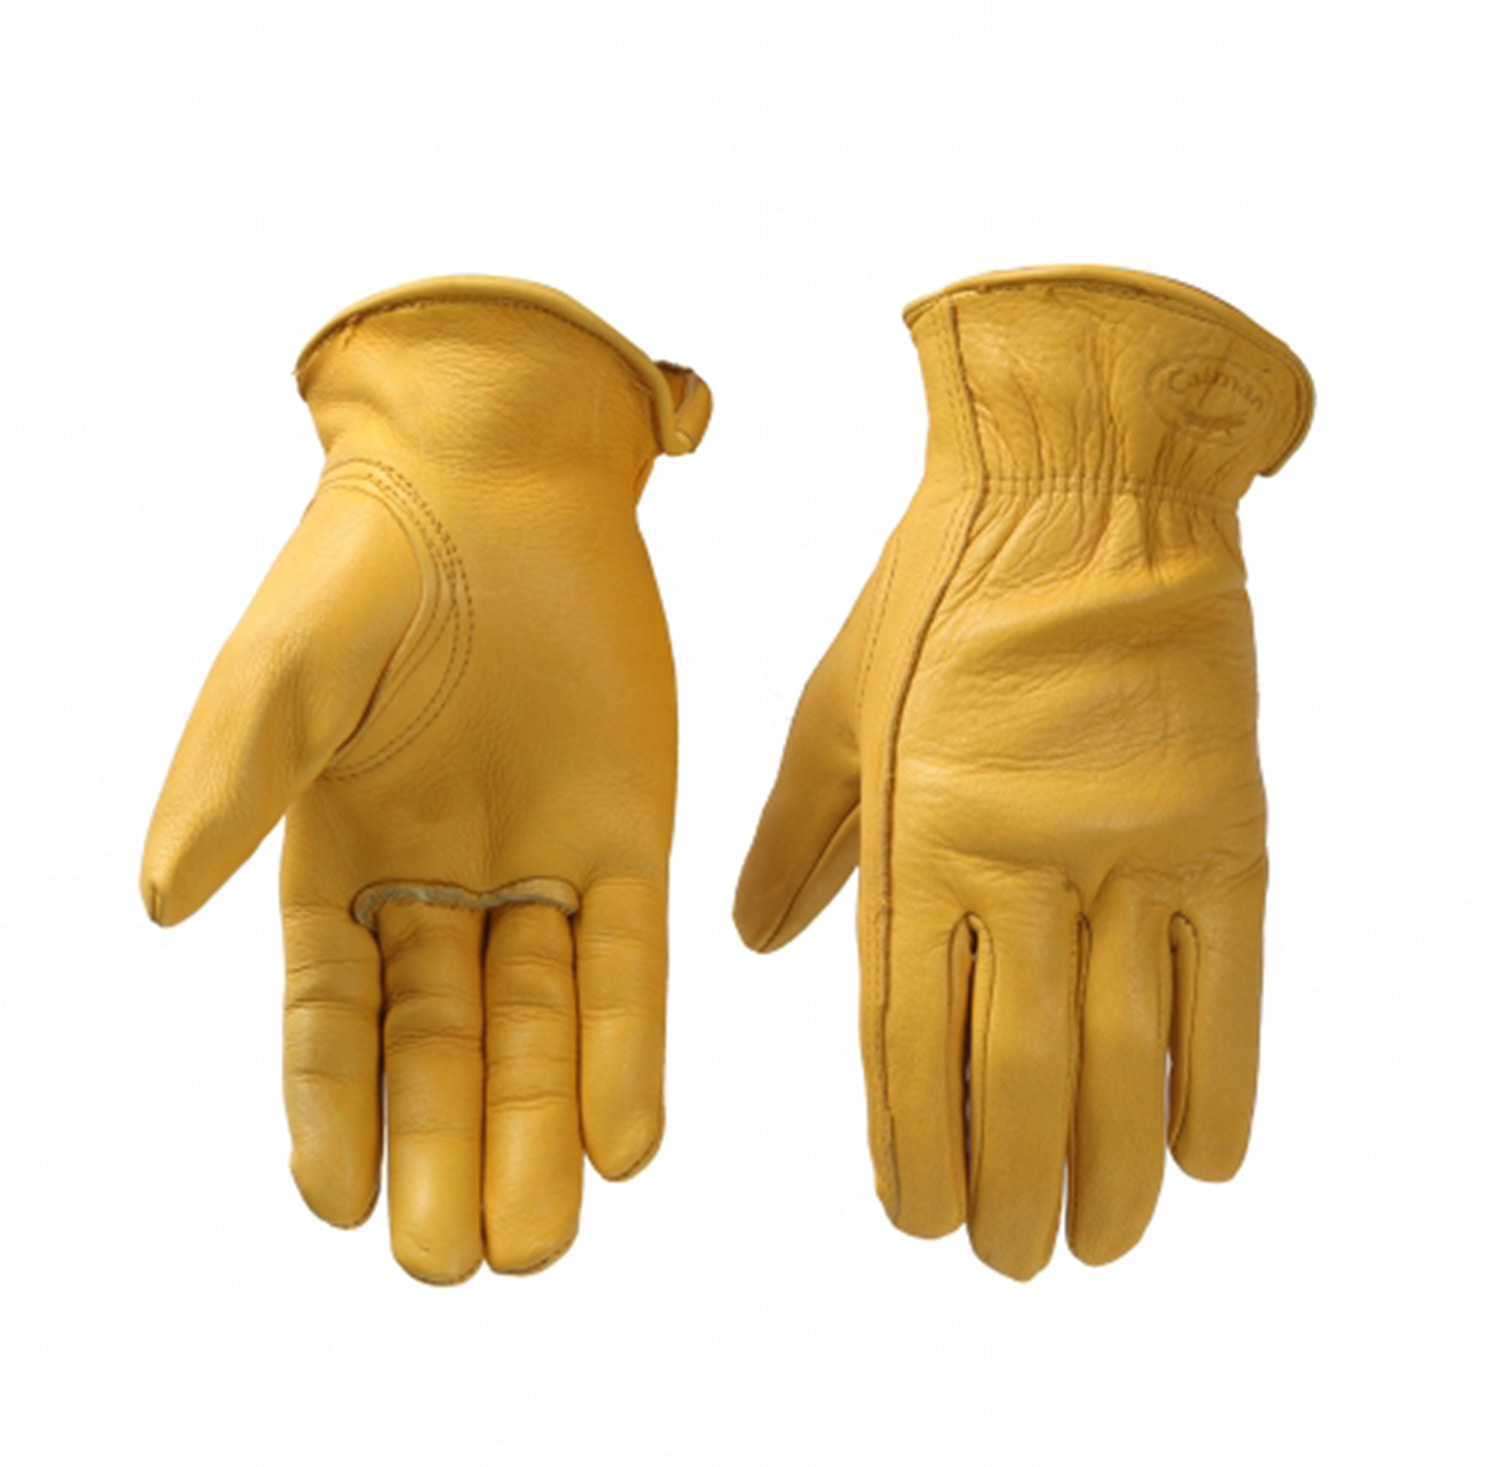 [카이맨 스크래치 리퍼브 사슴가죽 글러브] CAIMAN KOREA - 1331 OR 1330 Scratch Gold Basic Drivers Gloves(refurbished product)